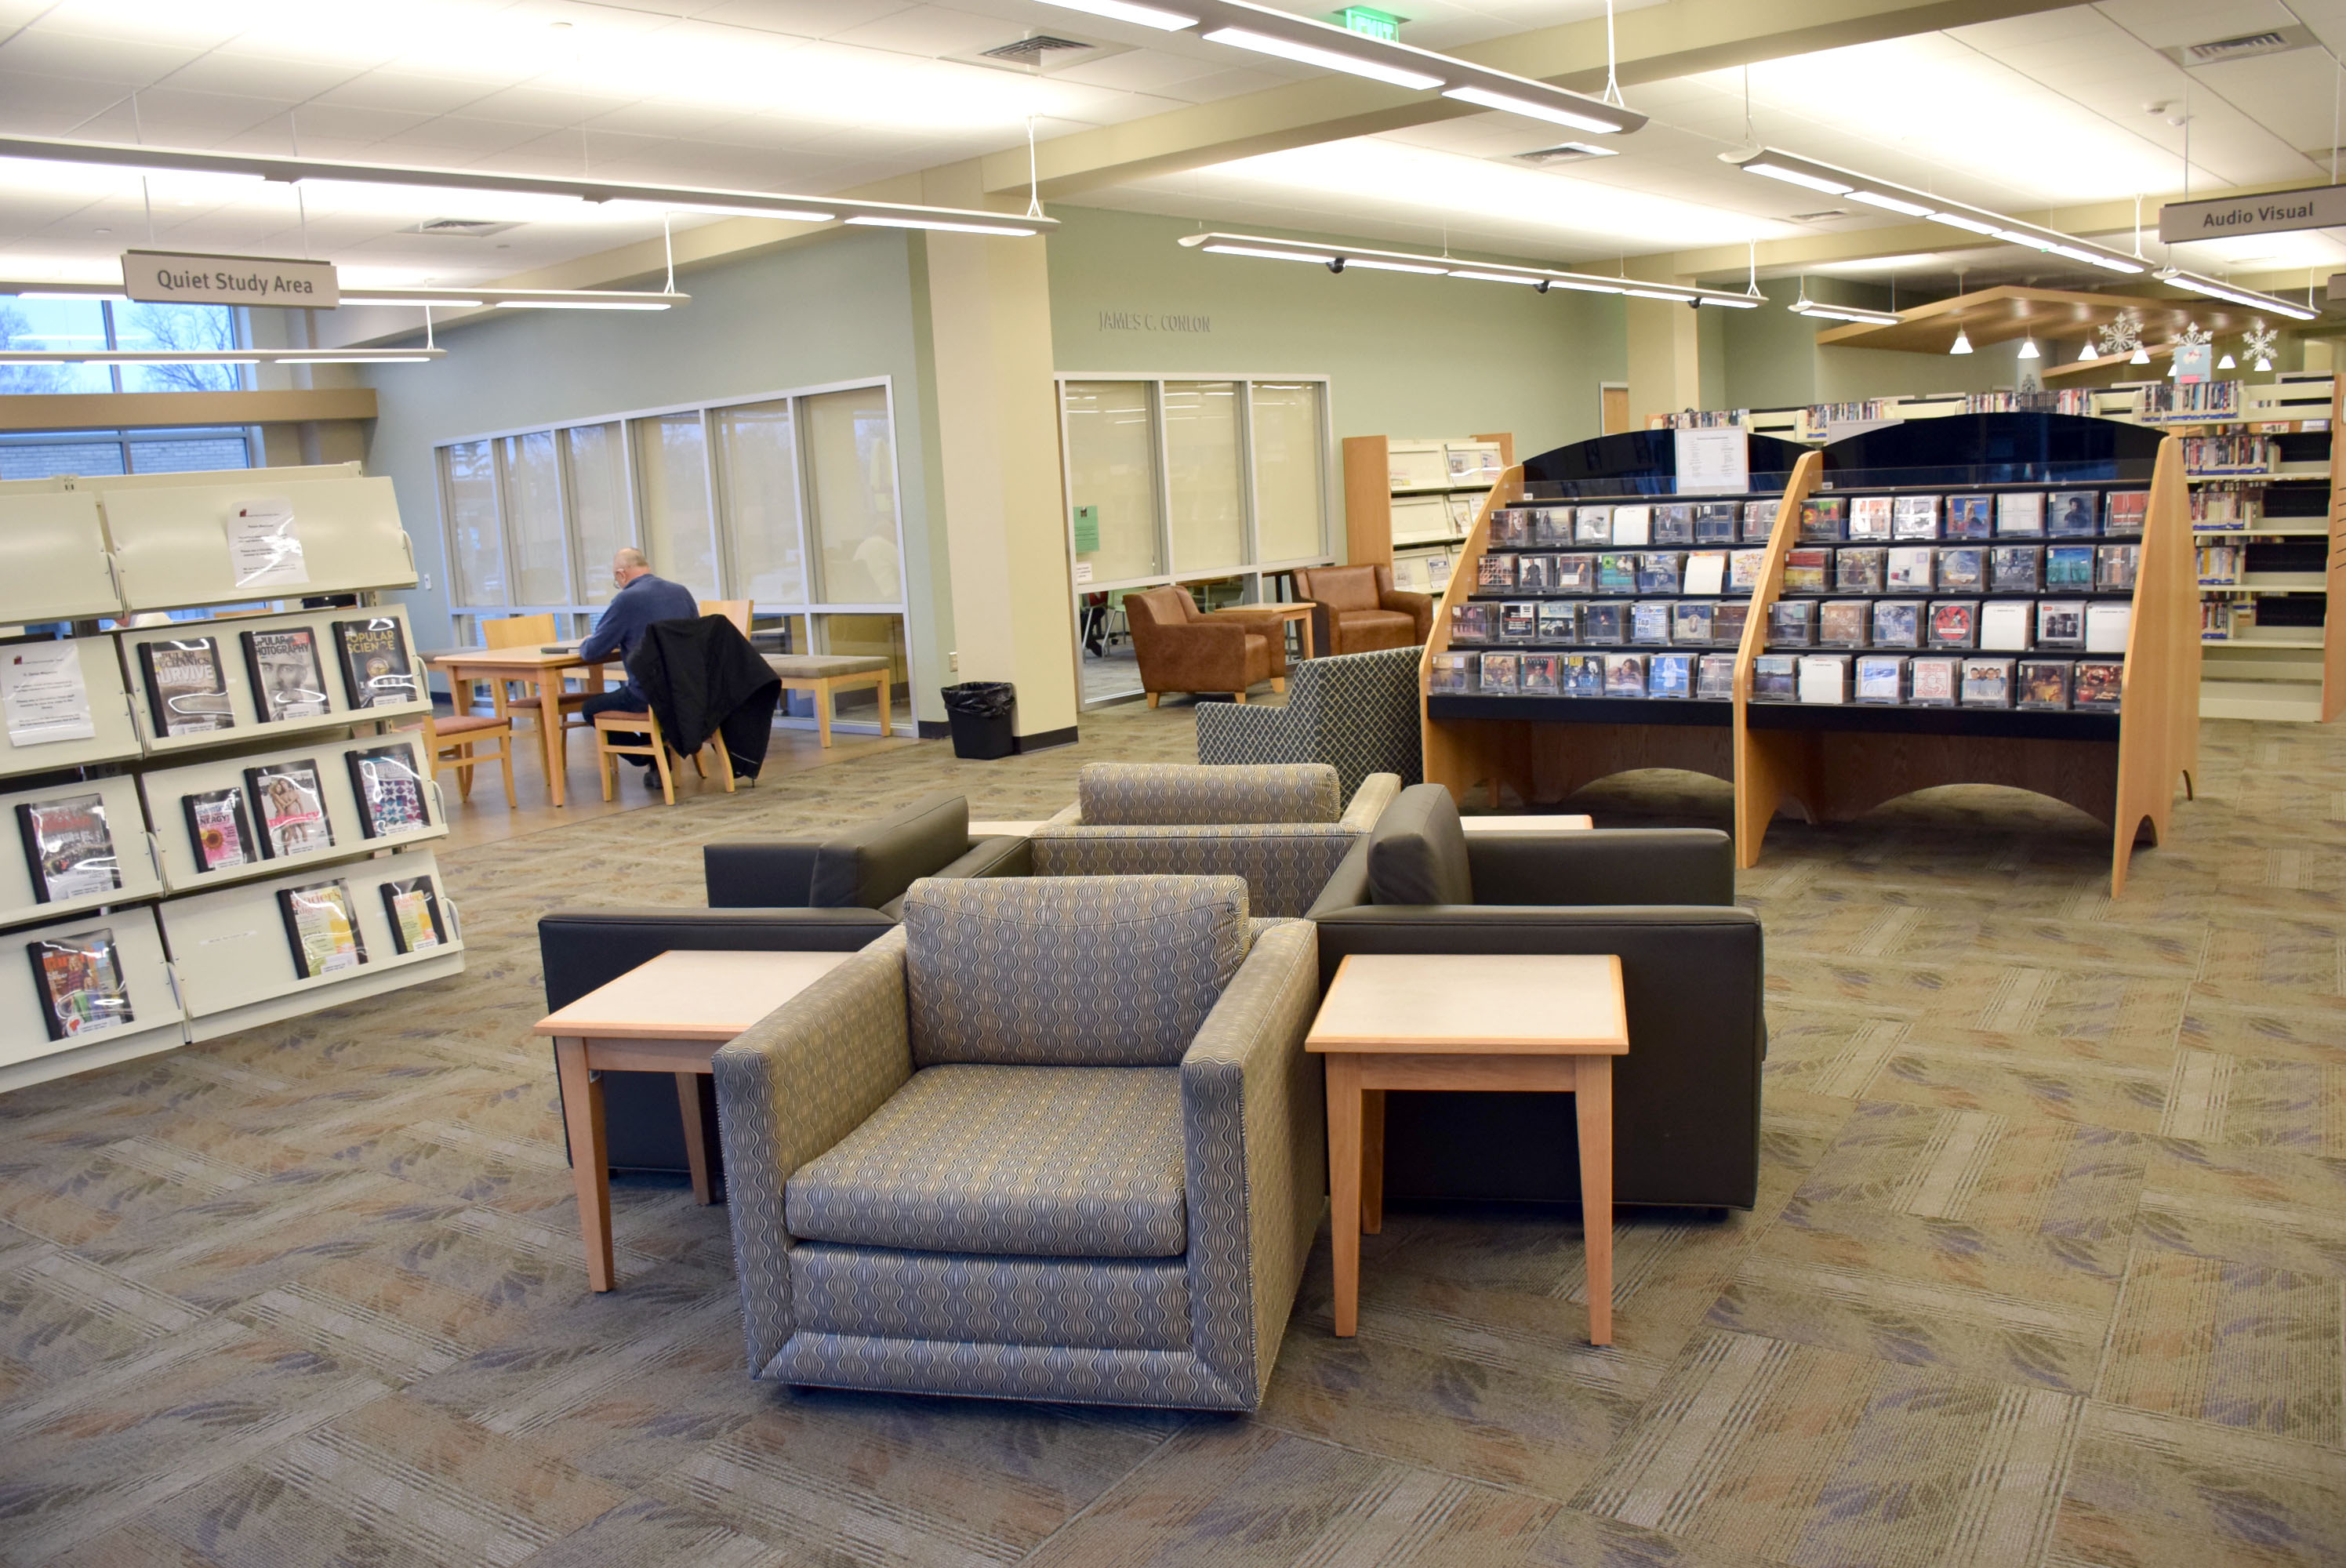 ... Conlon Community Literacy Center and utilized existing space on the 1st  floor to create new seating areas for patrons, relocate collections and  provide ...